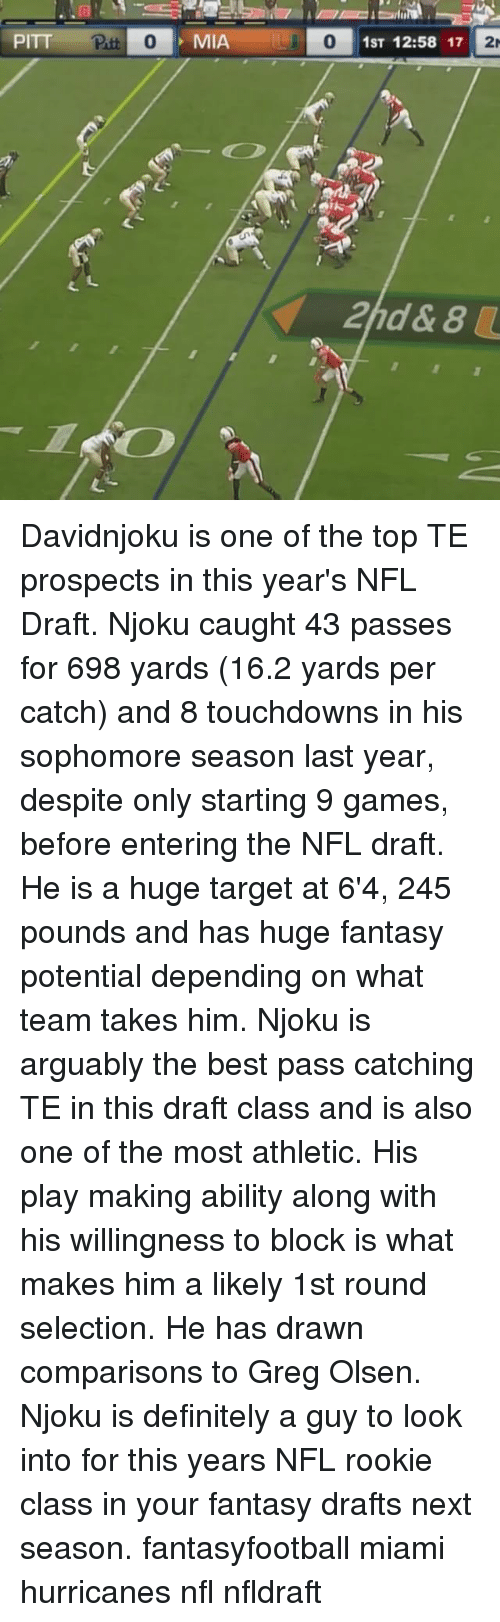 miami hurricanes: PITT  Patt 0  MIA  O 1ST 12:58 17  2r Davidnjoku is one of the top TE prospects in this year's NFL Draft. Njoku caught 43 passes for 698 yards (16.2 yards per catch) and 8 touchdowns in his sophomore season last year, despite only starting 9 games, before entering the NFL draft. He is a huge target at 6'4, 245 pounds and has huge fantasy potential depending on what team takes him. Njoku is arguably the best pass catching TE in this draft class and is also one of the most athletic. His play making ability along with his willingness to block is what makes him a likely 1st round selection. He has drawn comparisons to Greg Olsen. Njoku is definitely a guy to look into for this years NFL rookie class in your fantasy drafts next season. fantasyfootball miami hurricanes nfl nfldraft